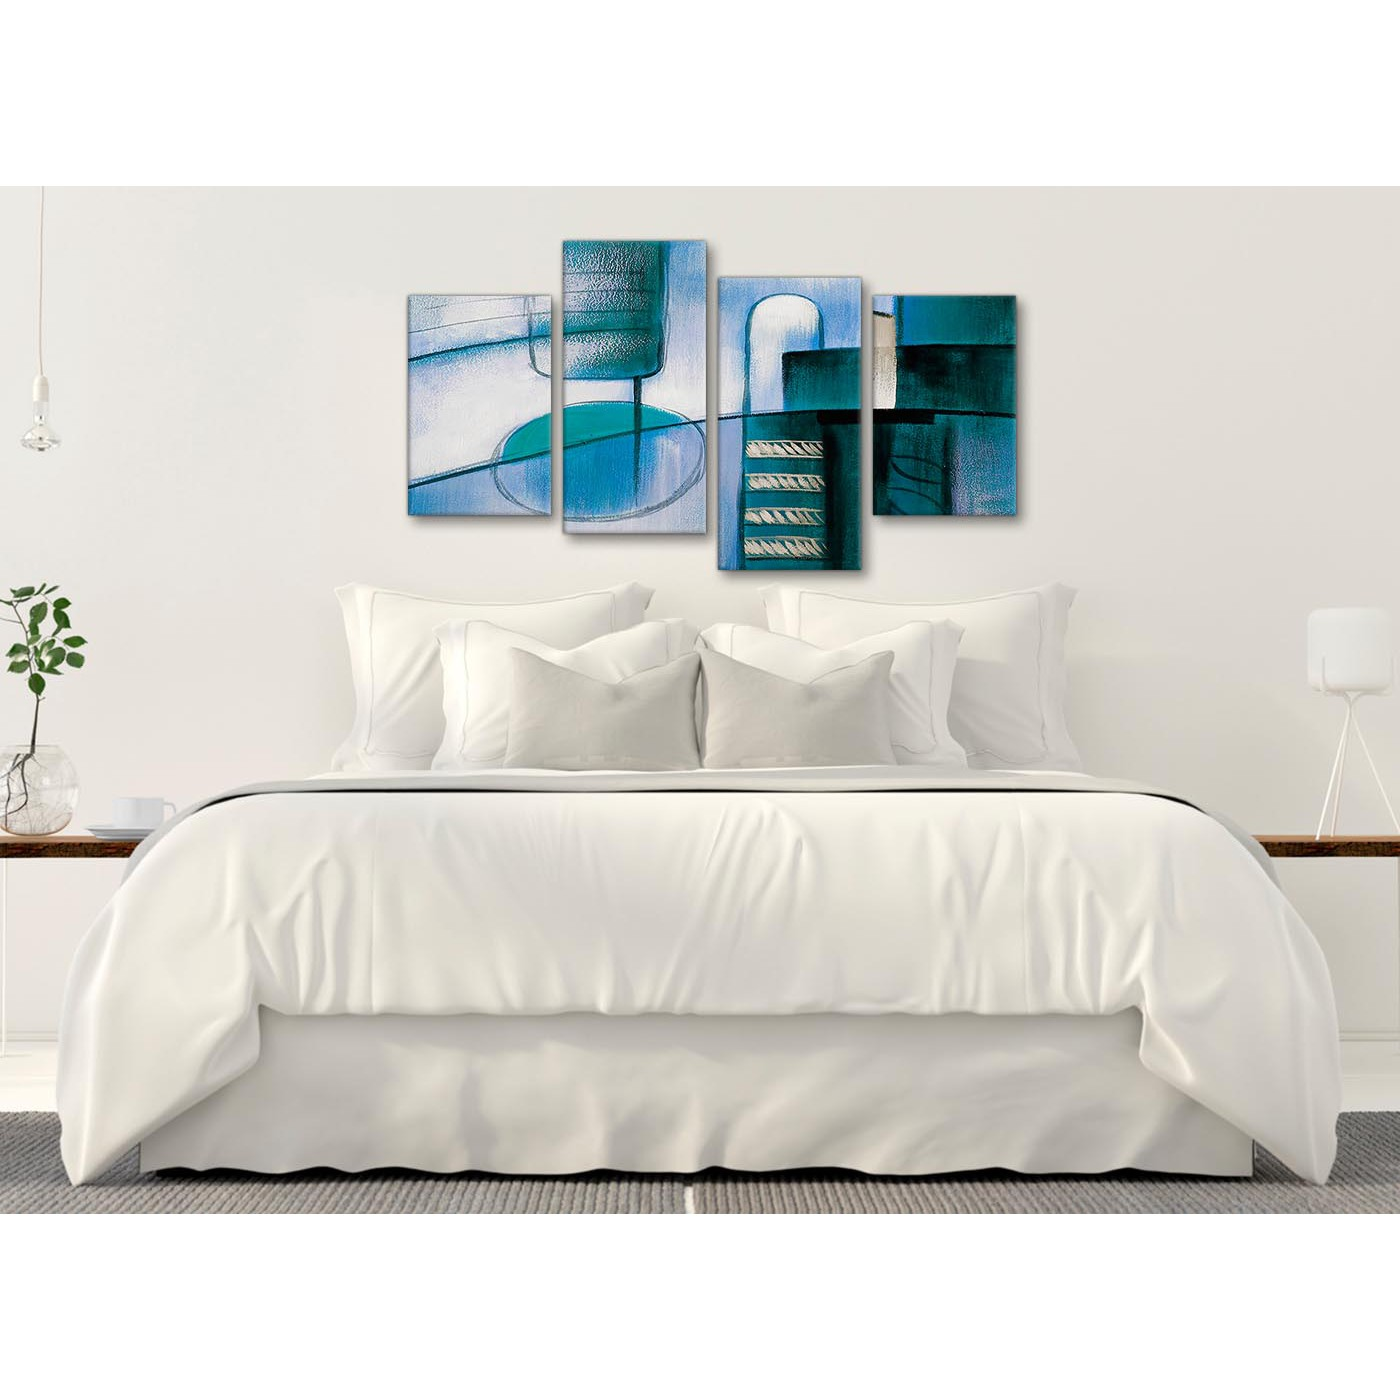 Large Canvas Prints For Living Room Large Teal Cream Painting Abstract Bedroom Canvas Wall Art